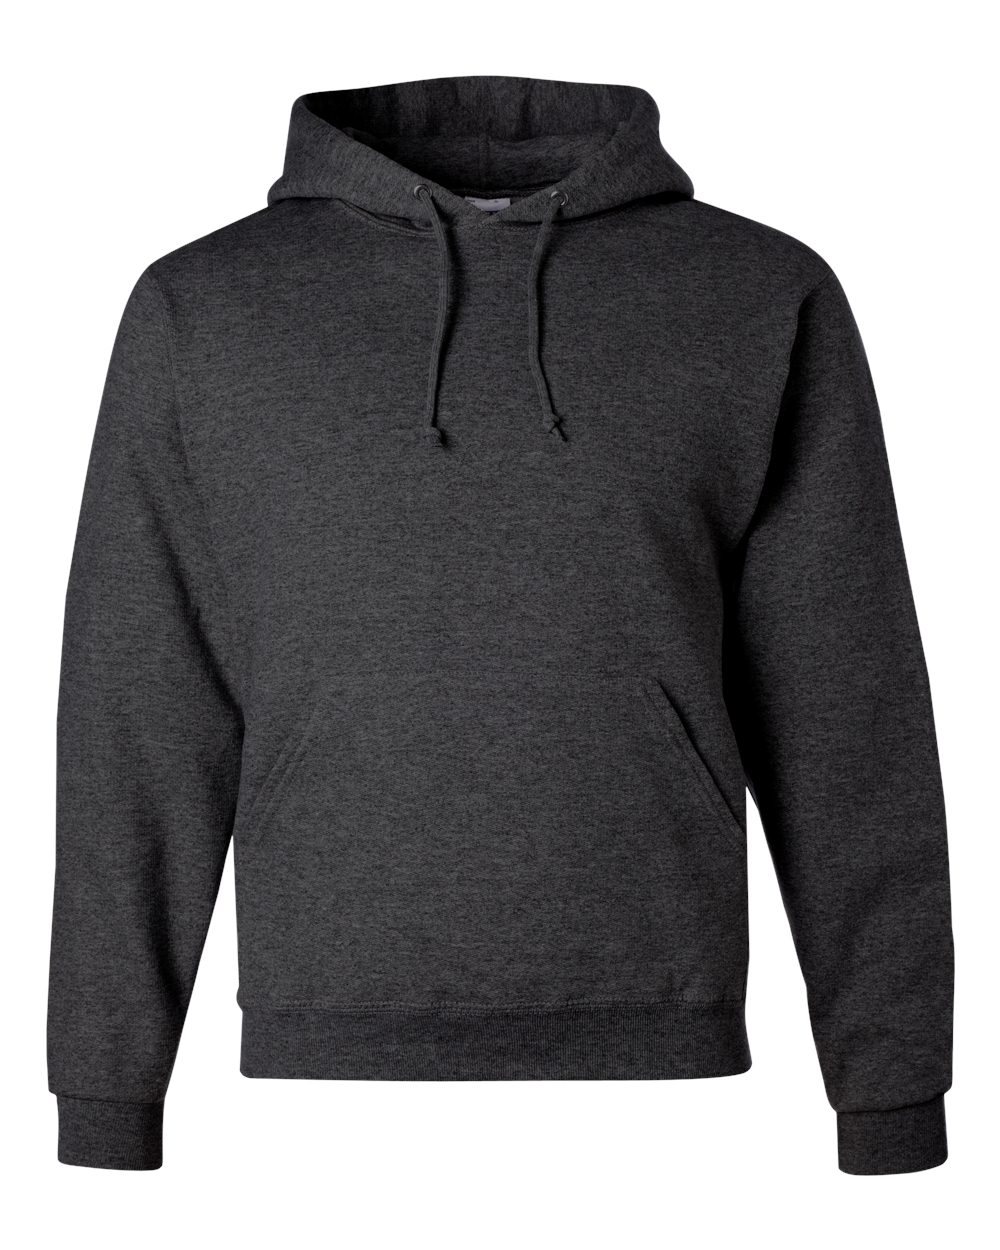 Picture of Jerzees Nublend Pullover Hooded Sweatshirt